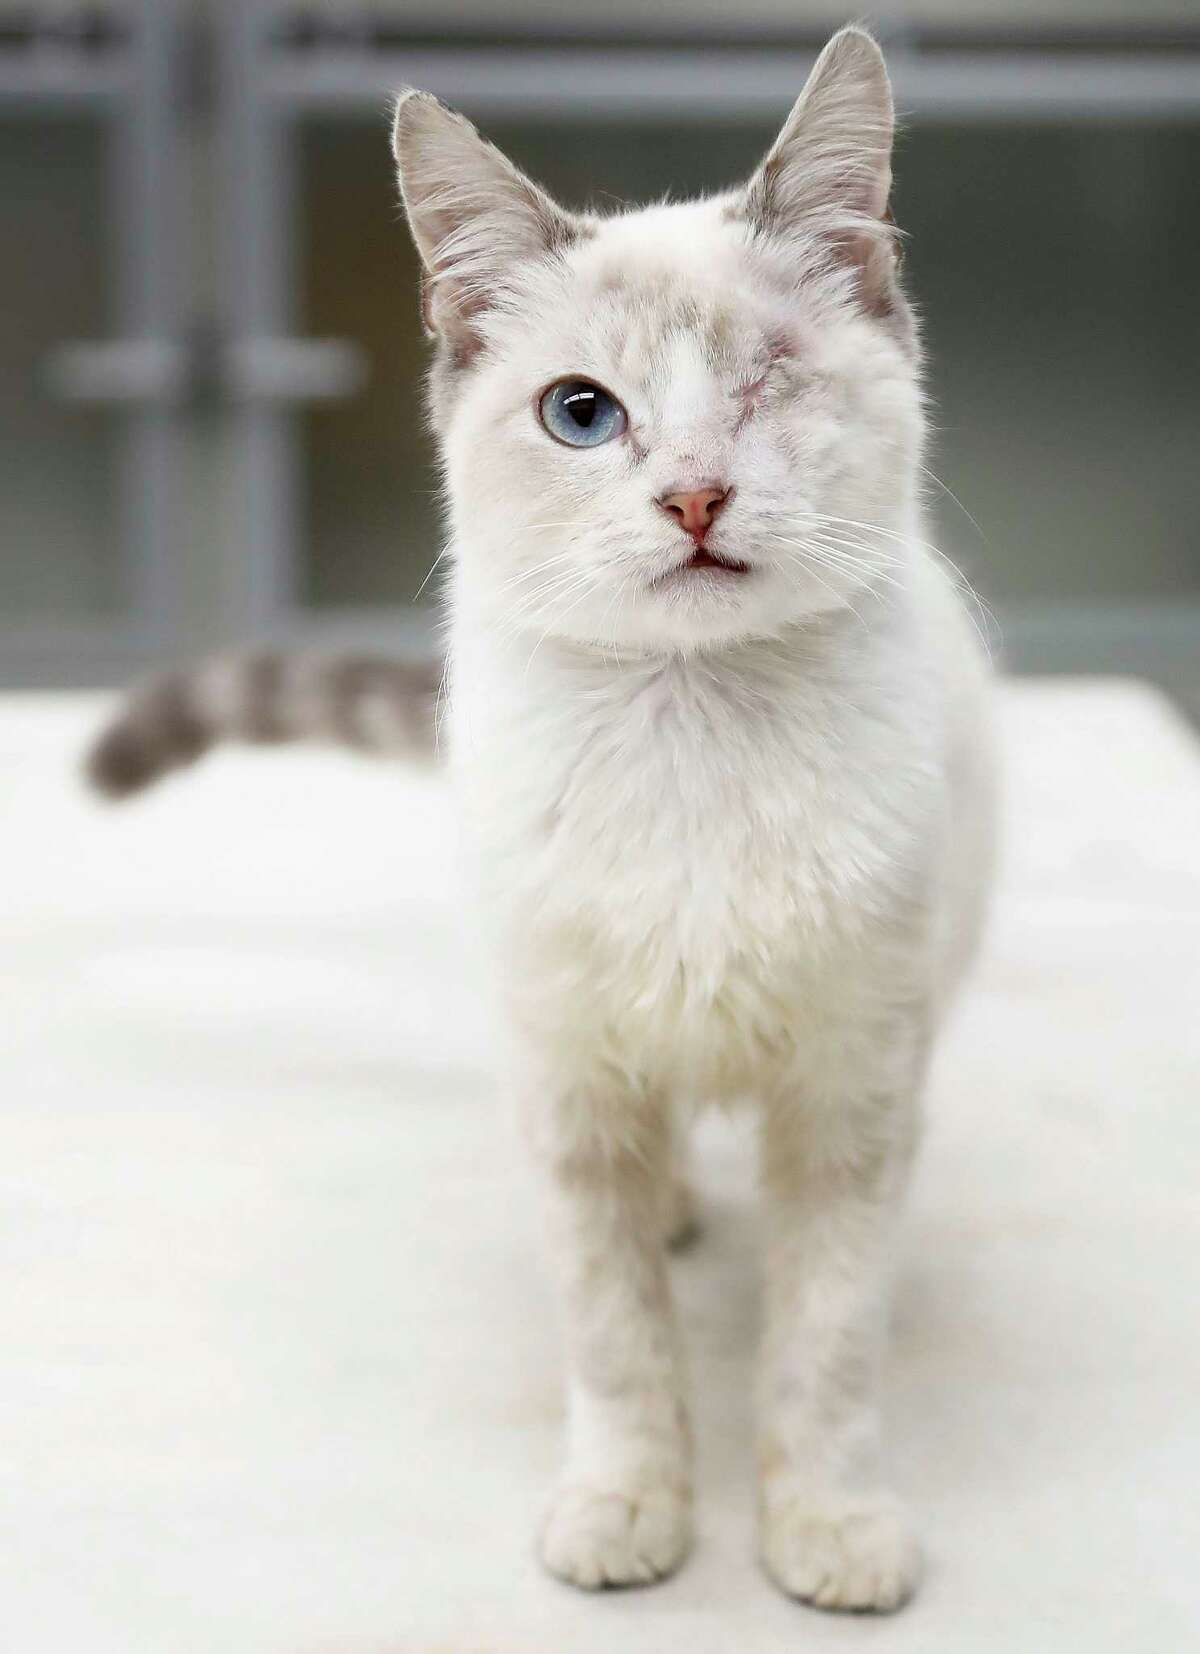 LEO (Animal ID: 376910) Leo is a 6-month-old Lilac Point kitten found with an injury to his eye that couldn't be repaired, which was sugically removed, and now Leo loves to be held and petted, as well as chase toys and is available for adpotion from the Houston SPCA. Photographed Monday, Nov. 19, 2018, in Houston.